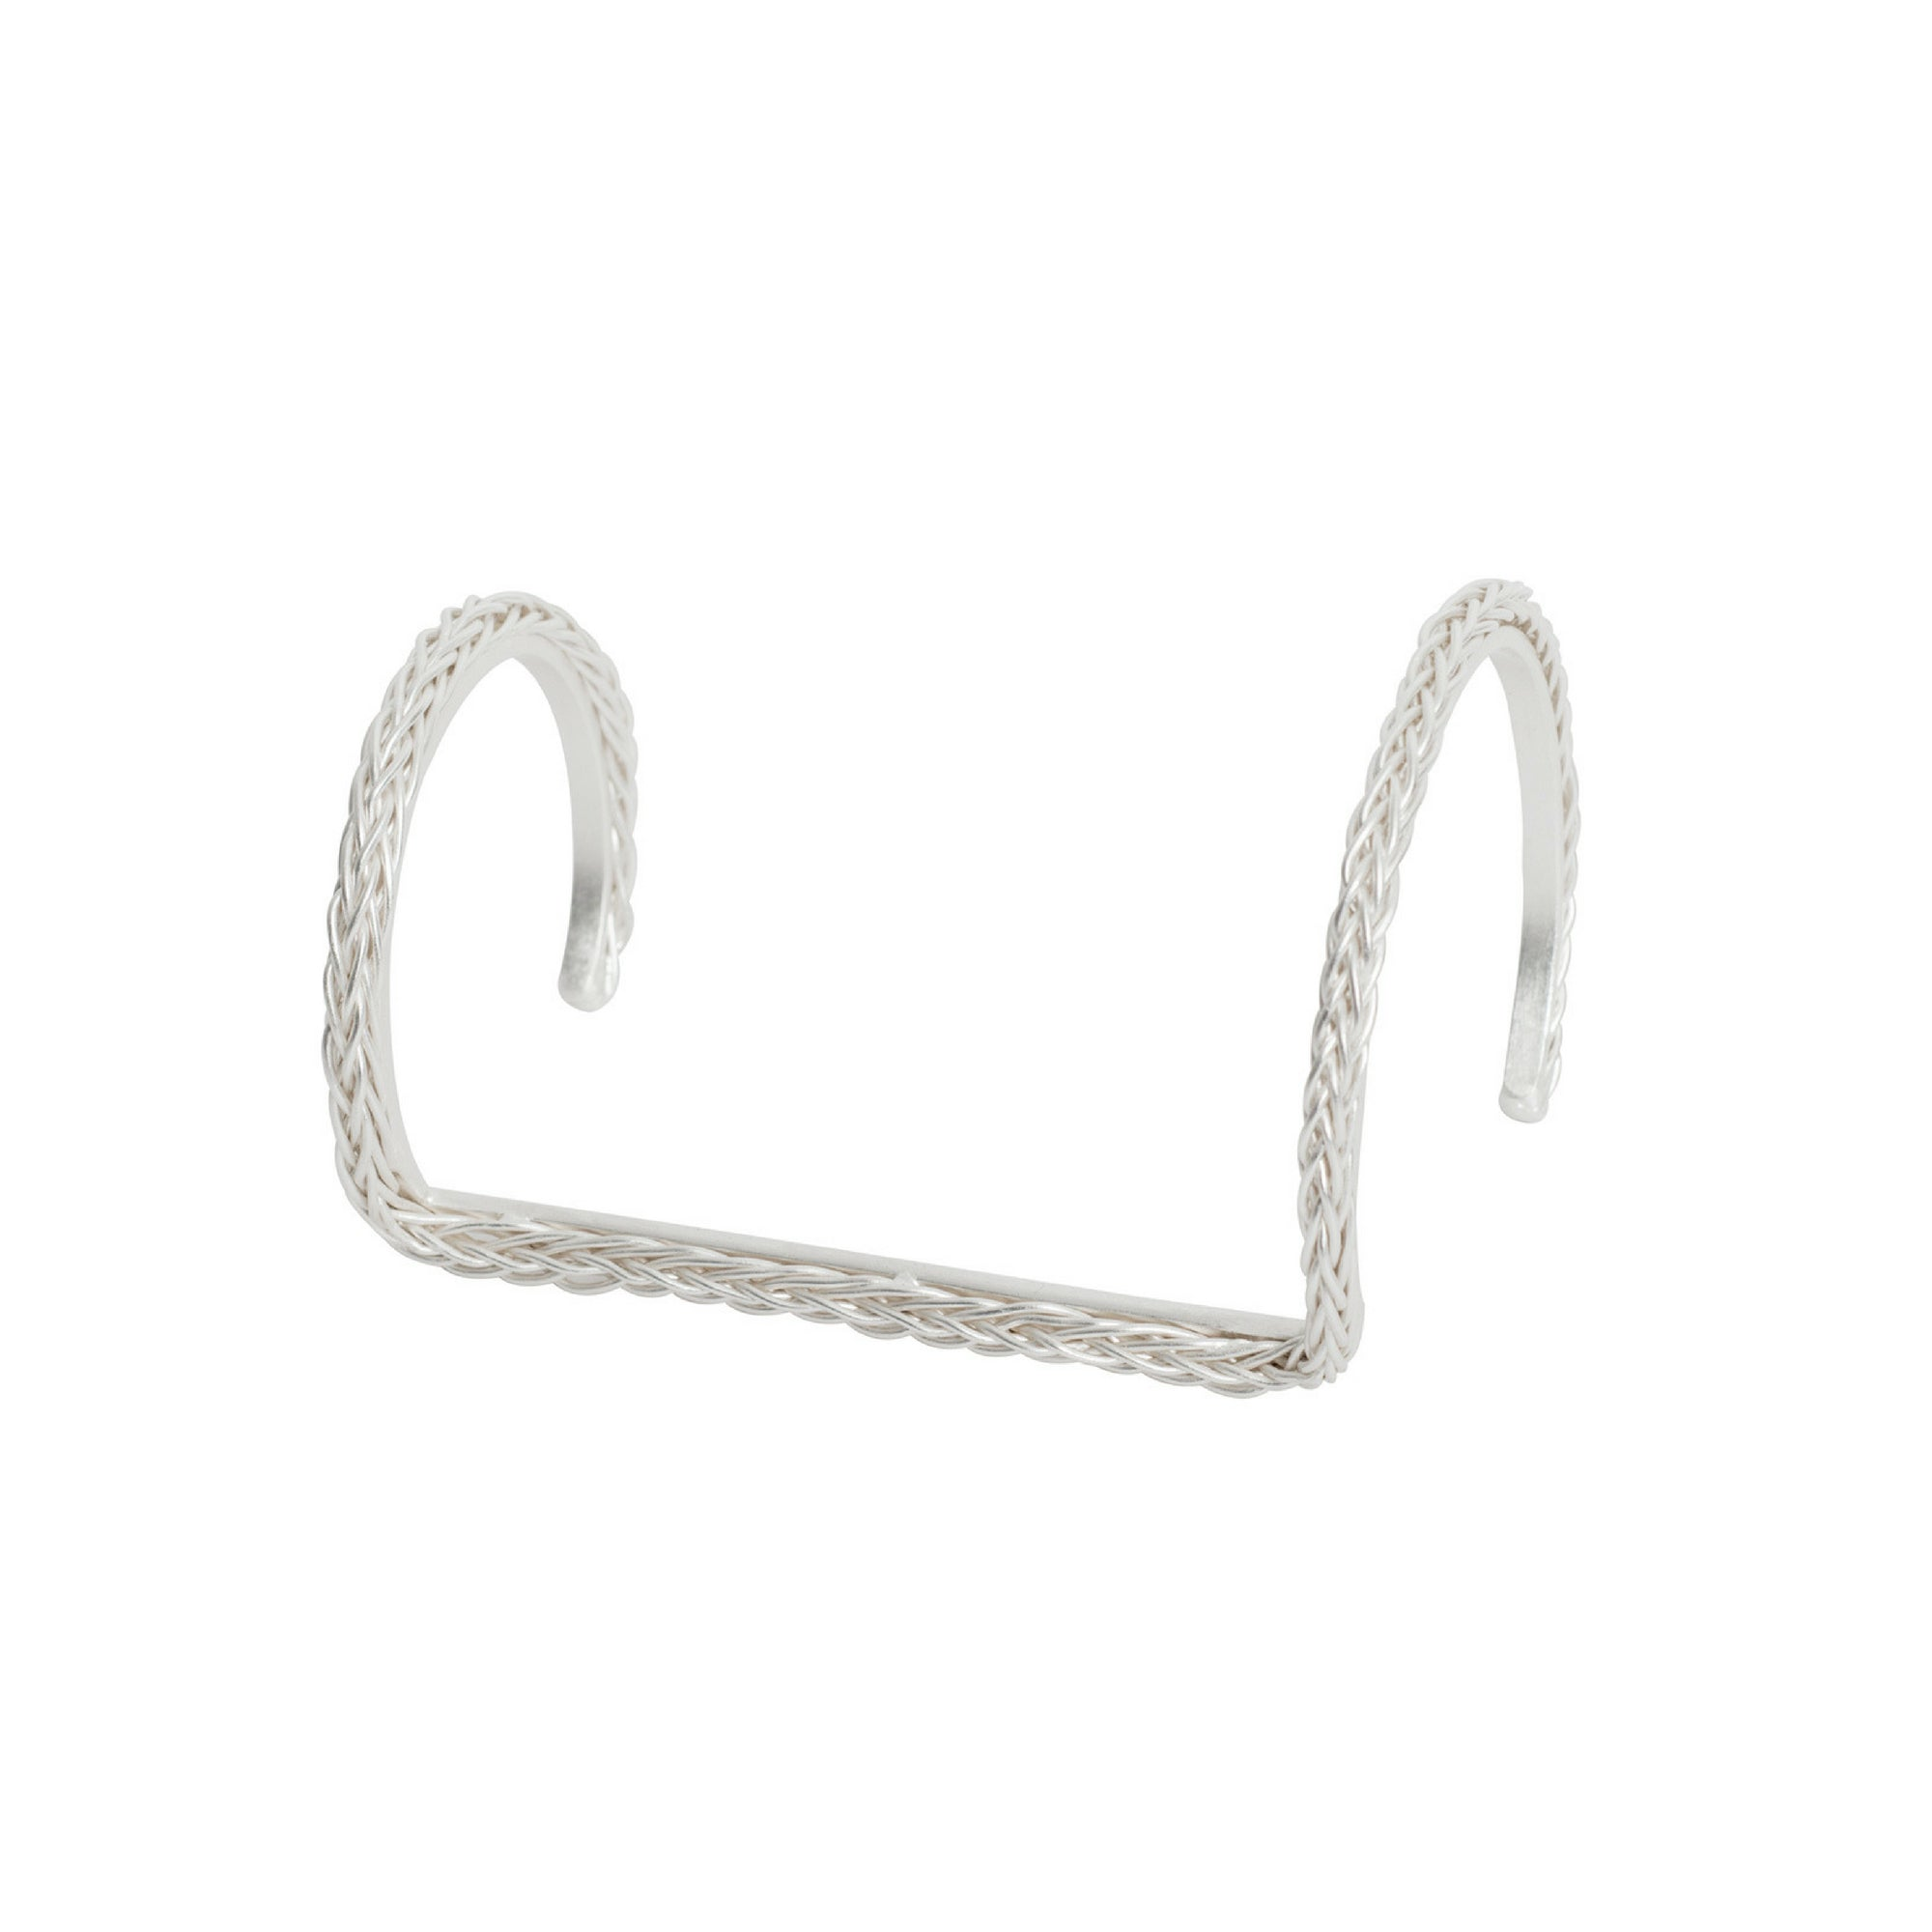 Liza Echeverry Jewelry Colombia Pont Bracelet White Gold